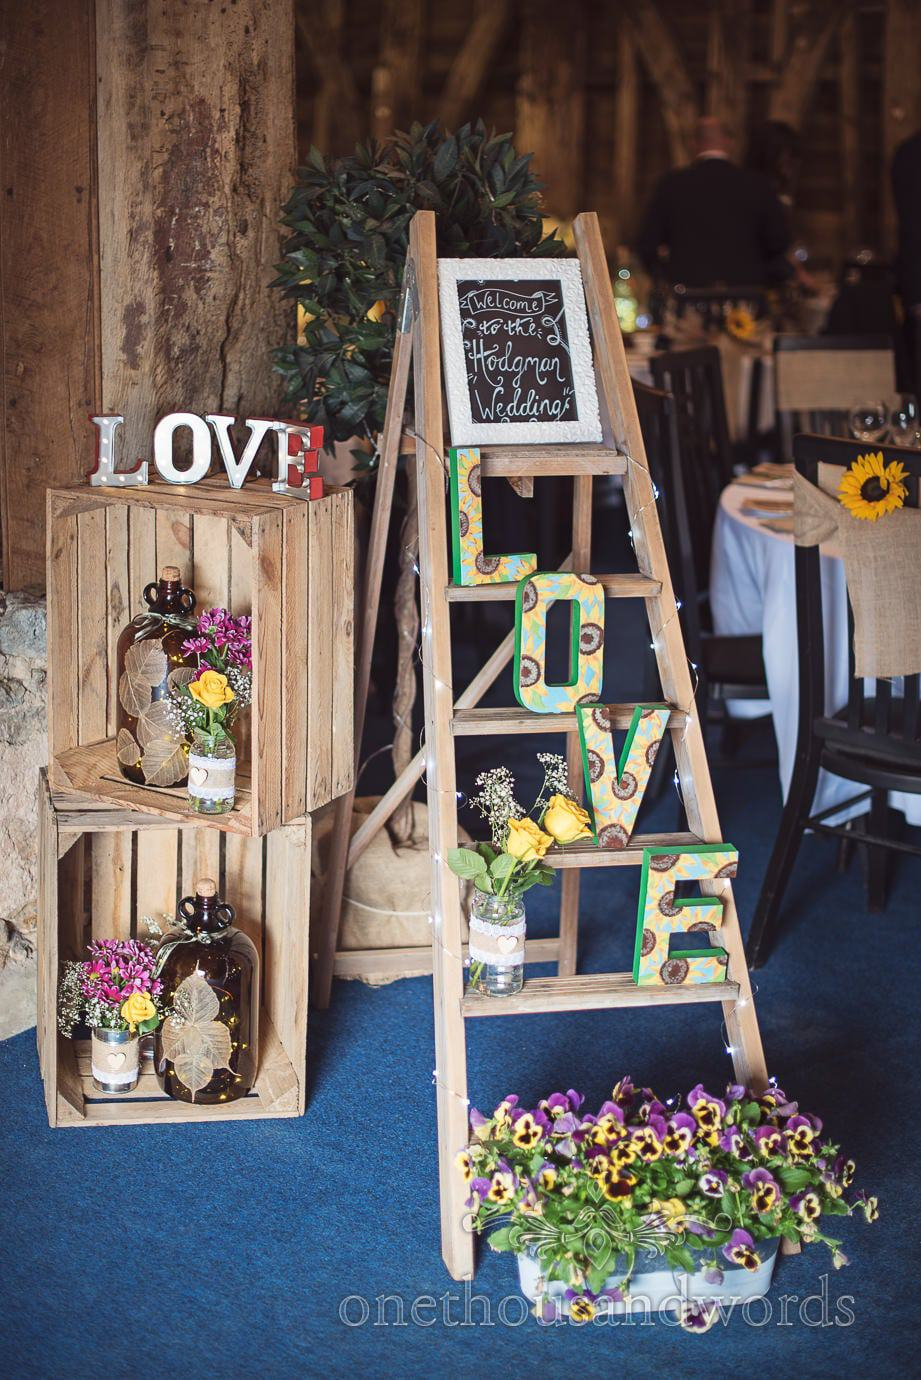 Rustic wedding signs with wooden step ladders, wooden crates and flower buckets